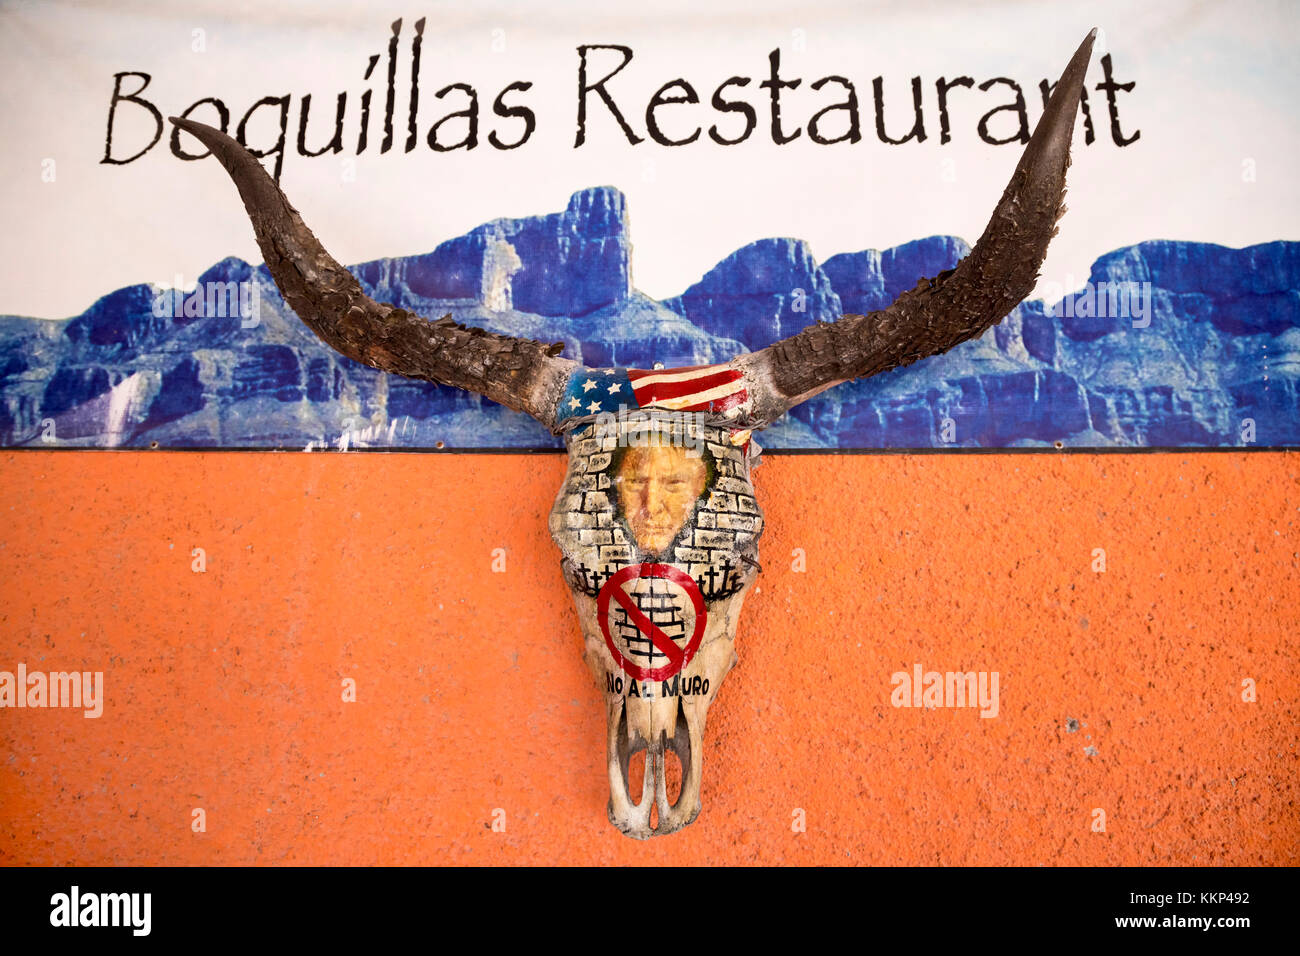 Boquillas del Carmen, Coahuila, Mexico - A longhorn skull on the wall of the Boquillas Restaurant is decorated with Stock Photo